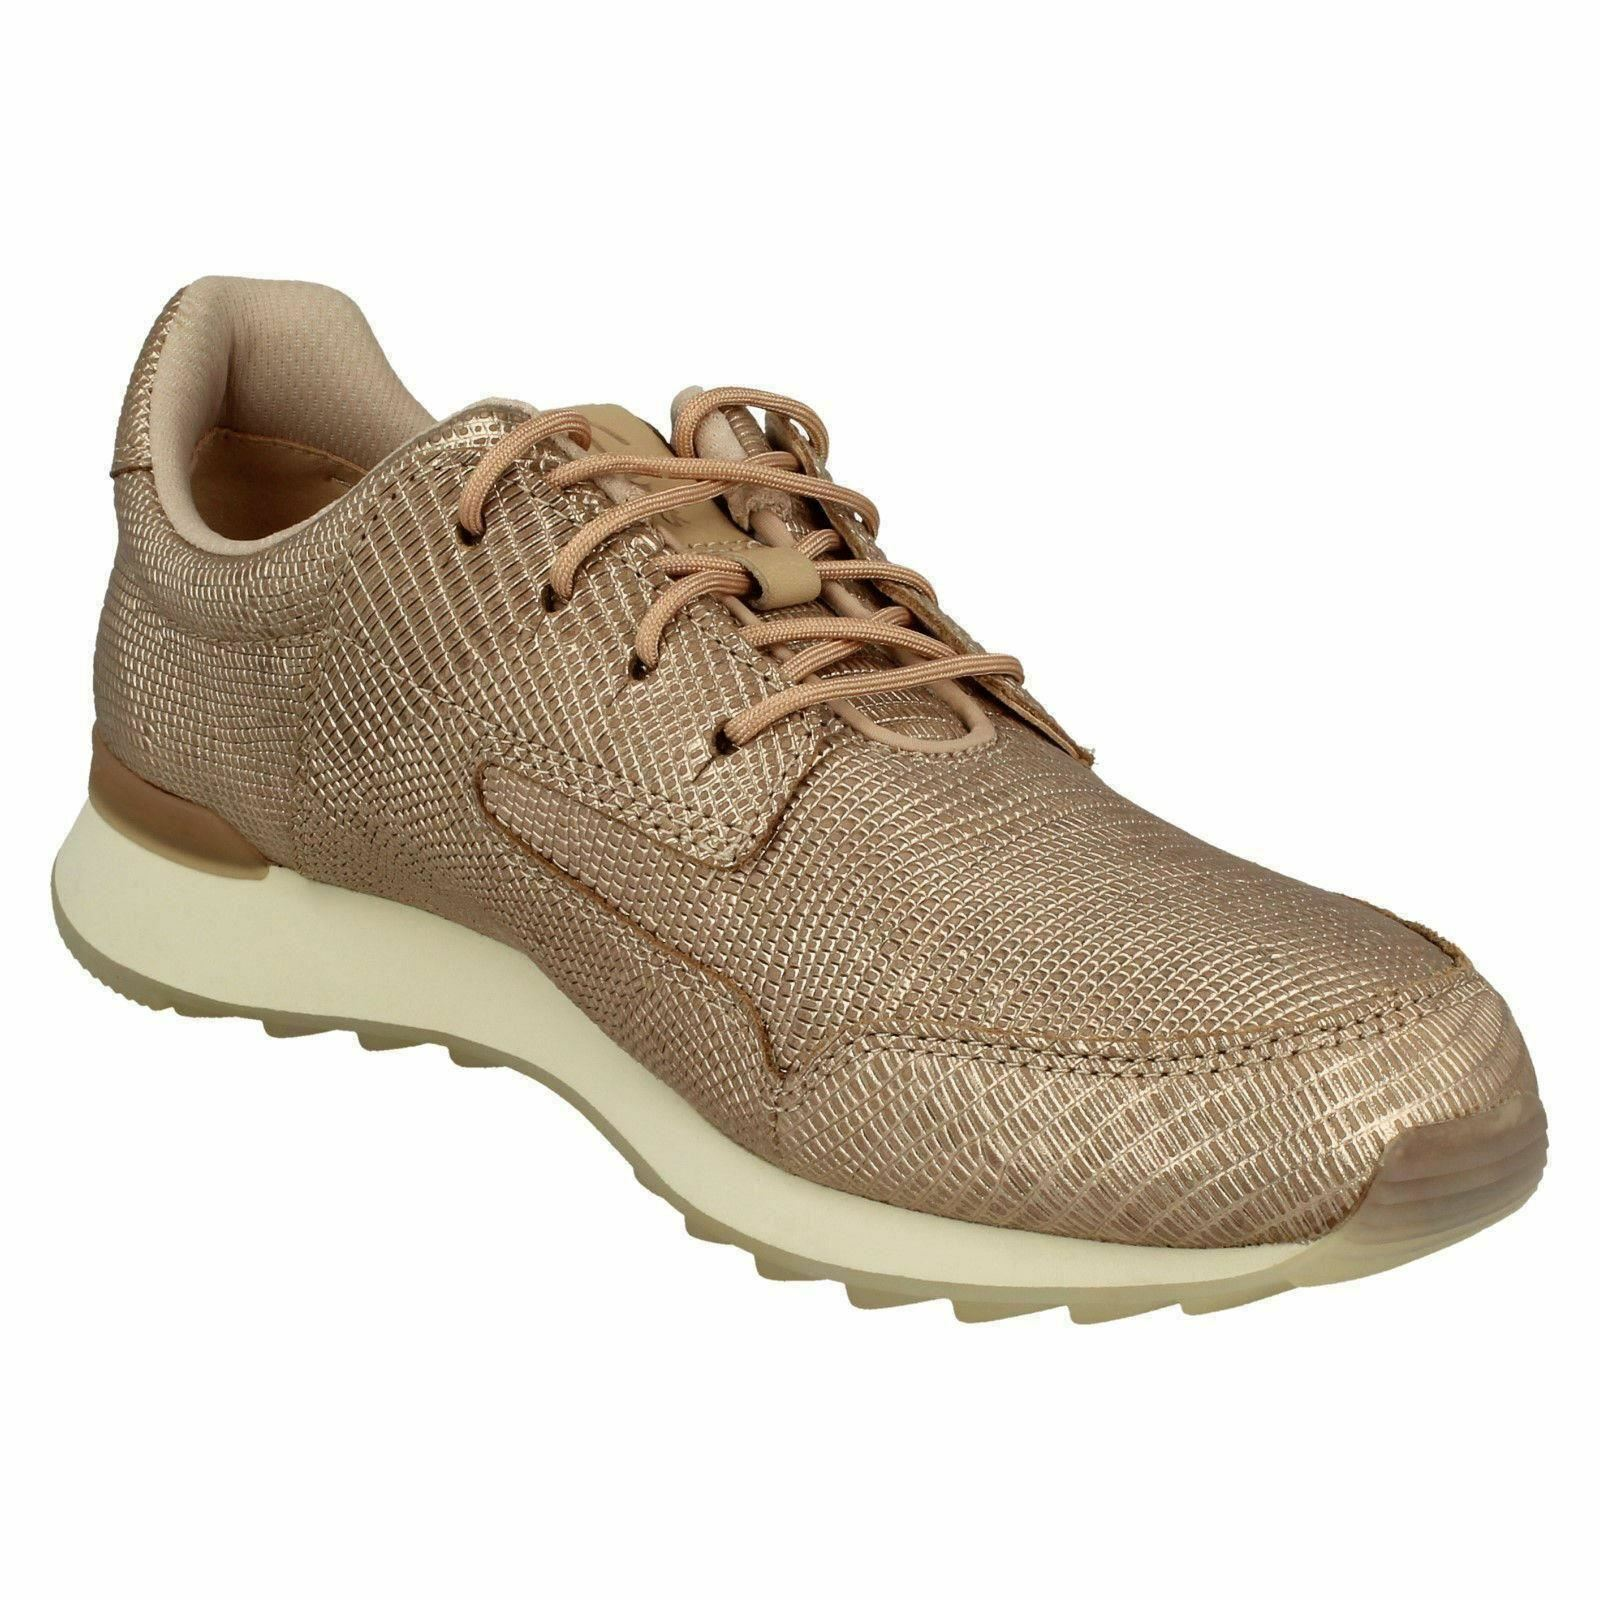 Clarks Floura Mix Casual Lace Up Trainers/Schuhes